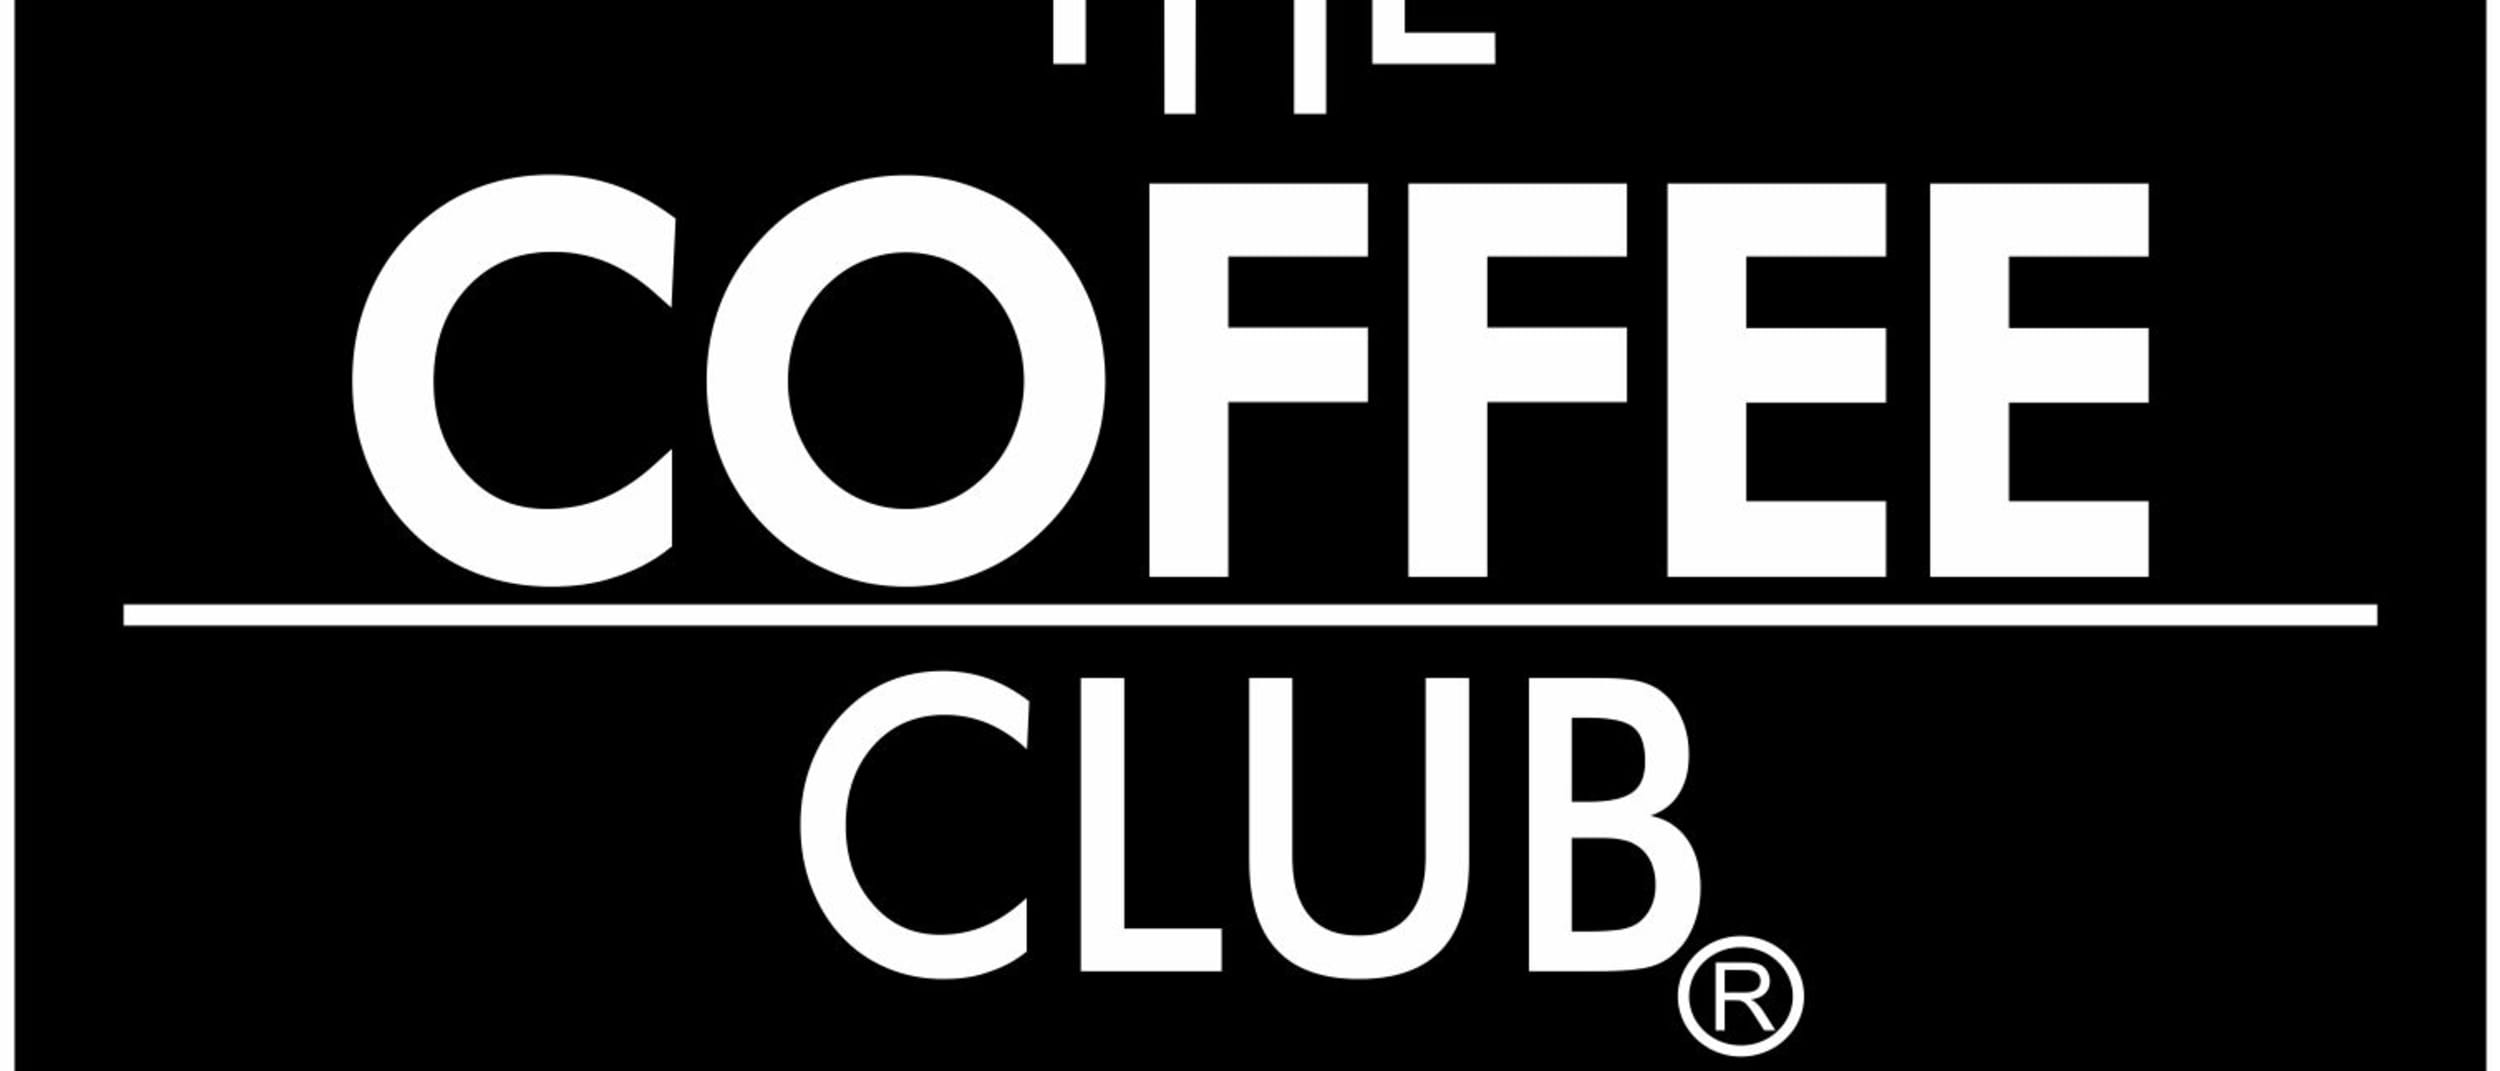 The Coffee Club: $10 burger